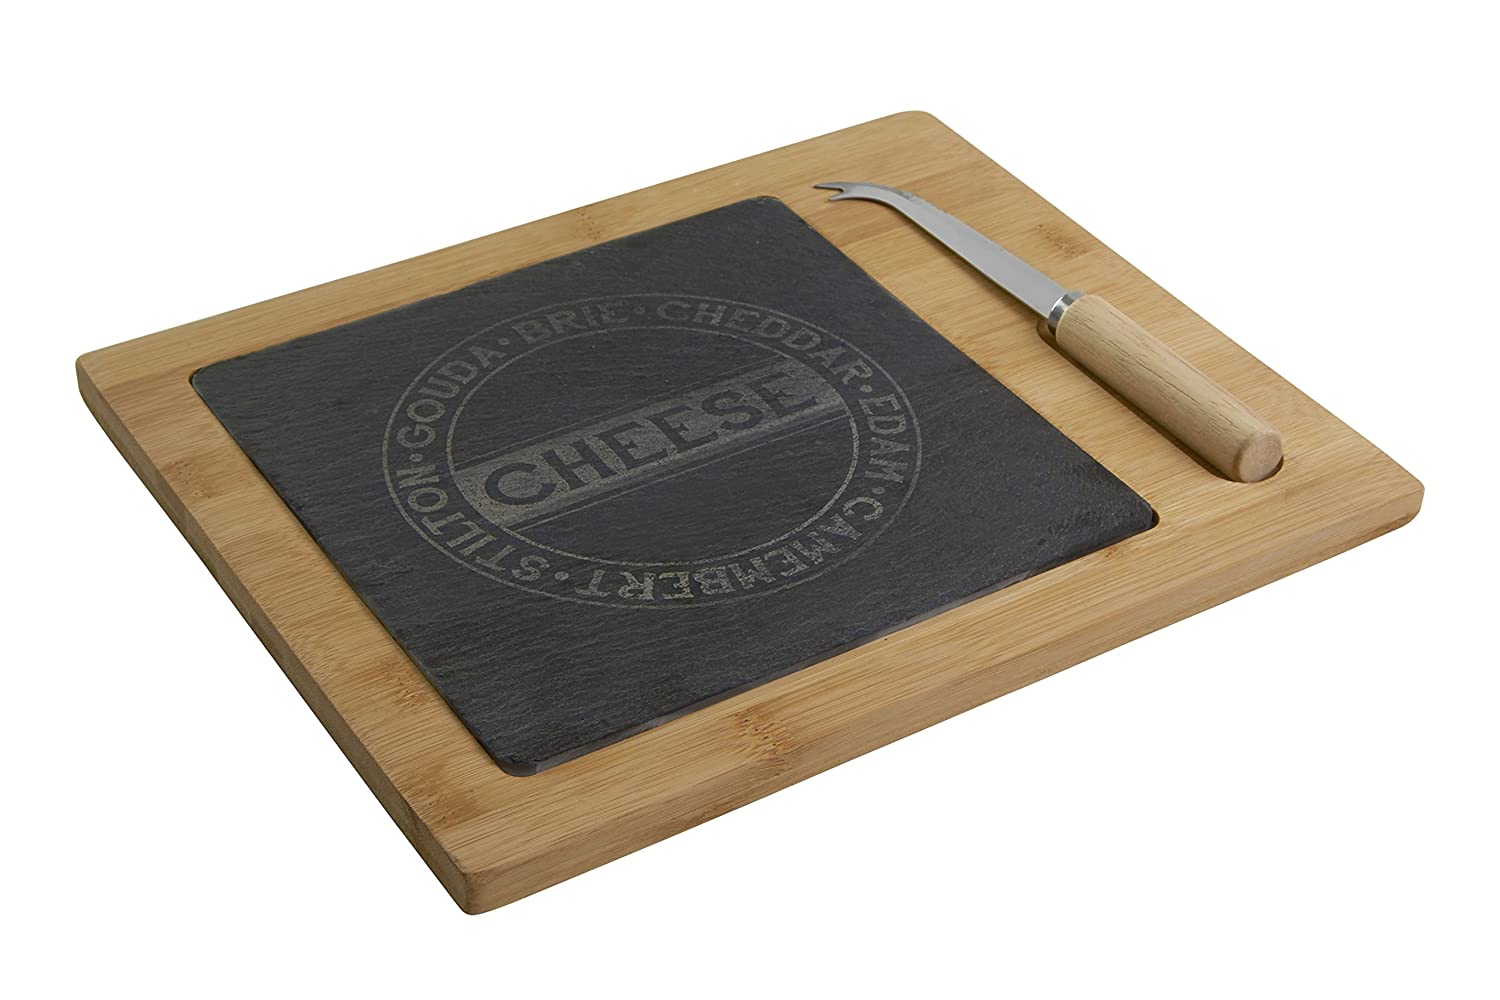 Premier Housewares Slate/Bamboo Cheese Set, Natural/Grey, 2-Piece 1403239 1403239_Negro-w30xd25xh3cm